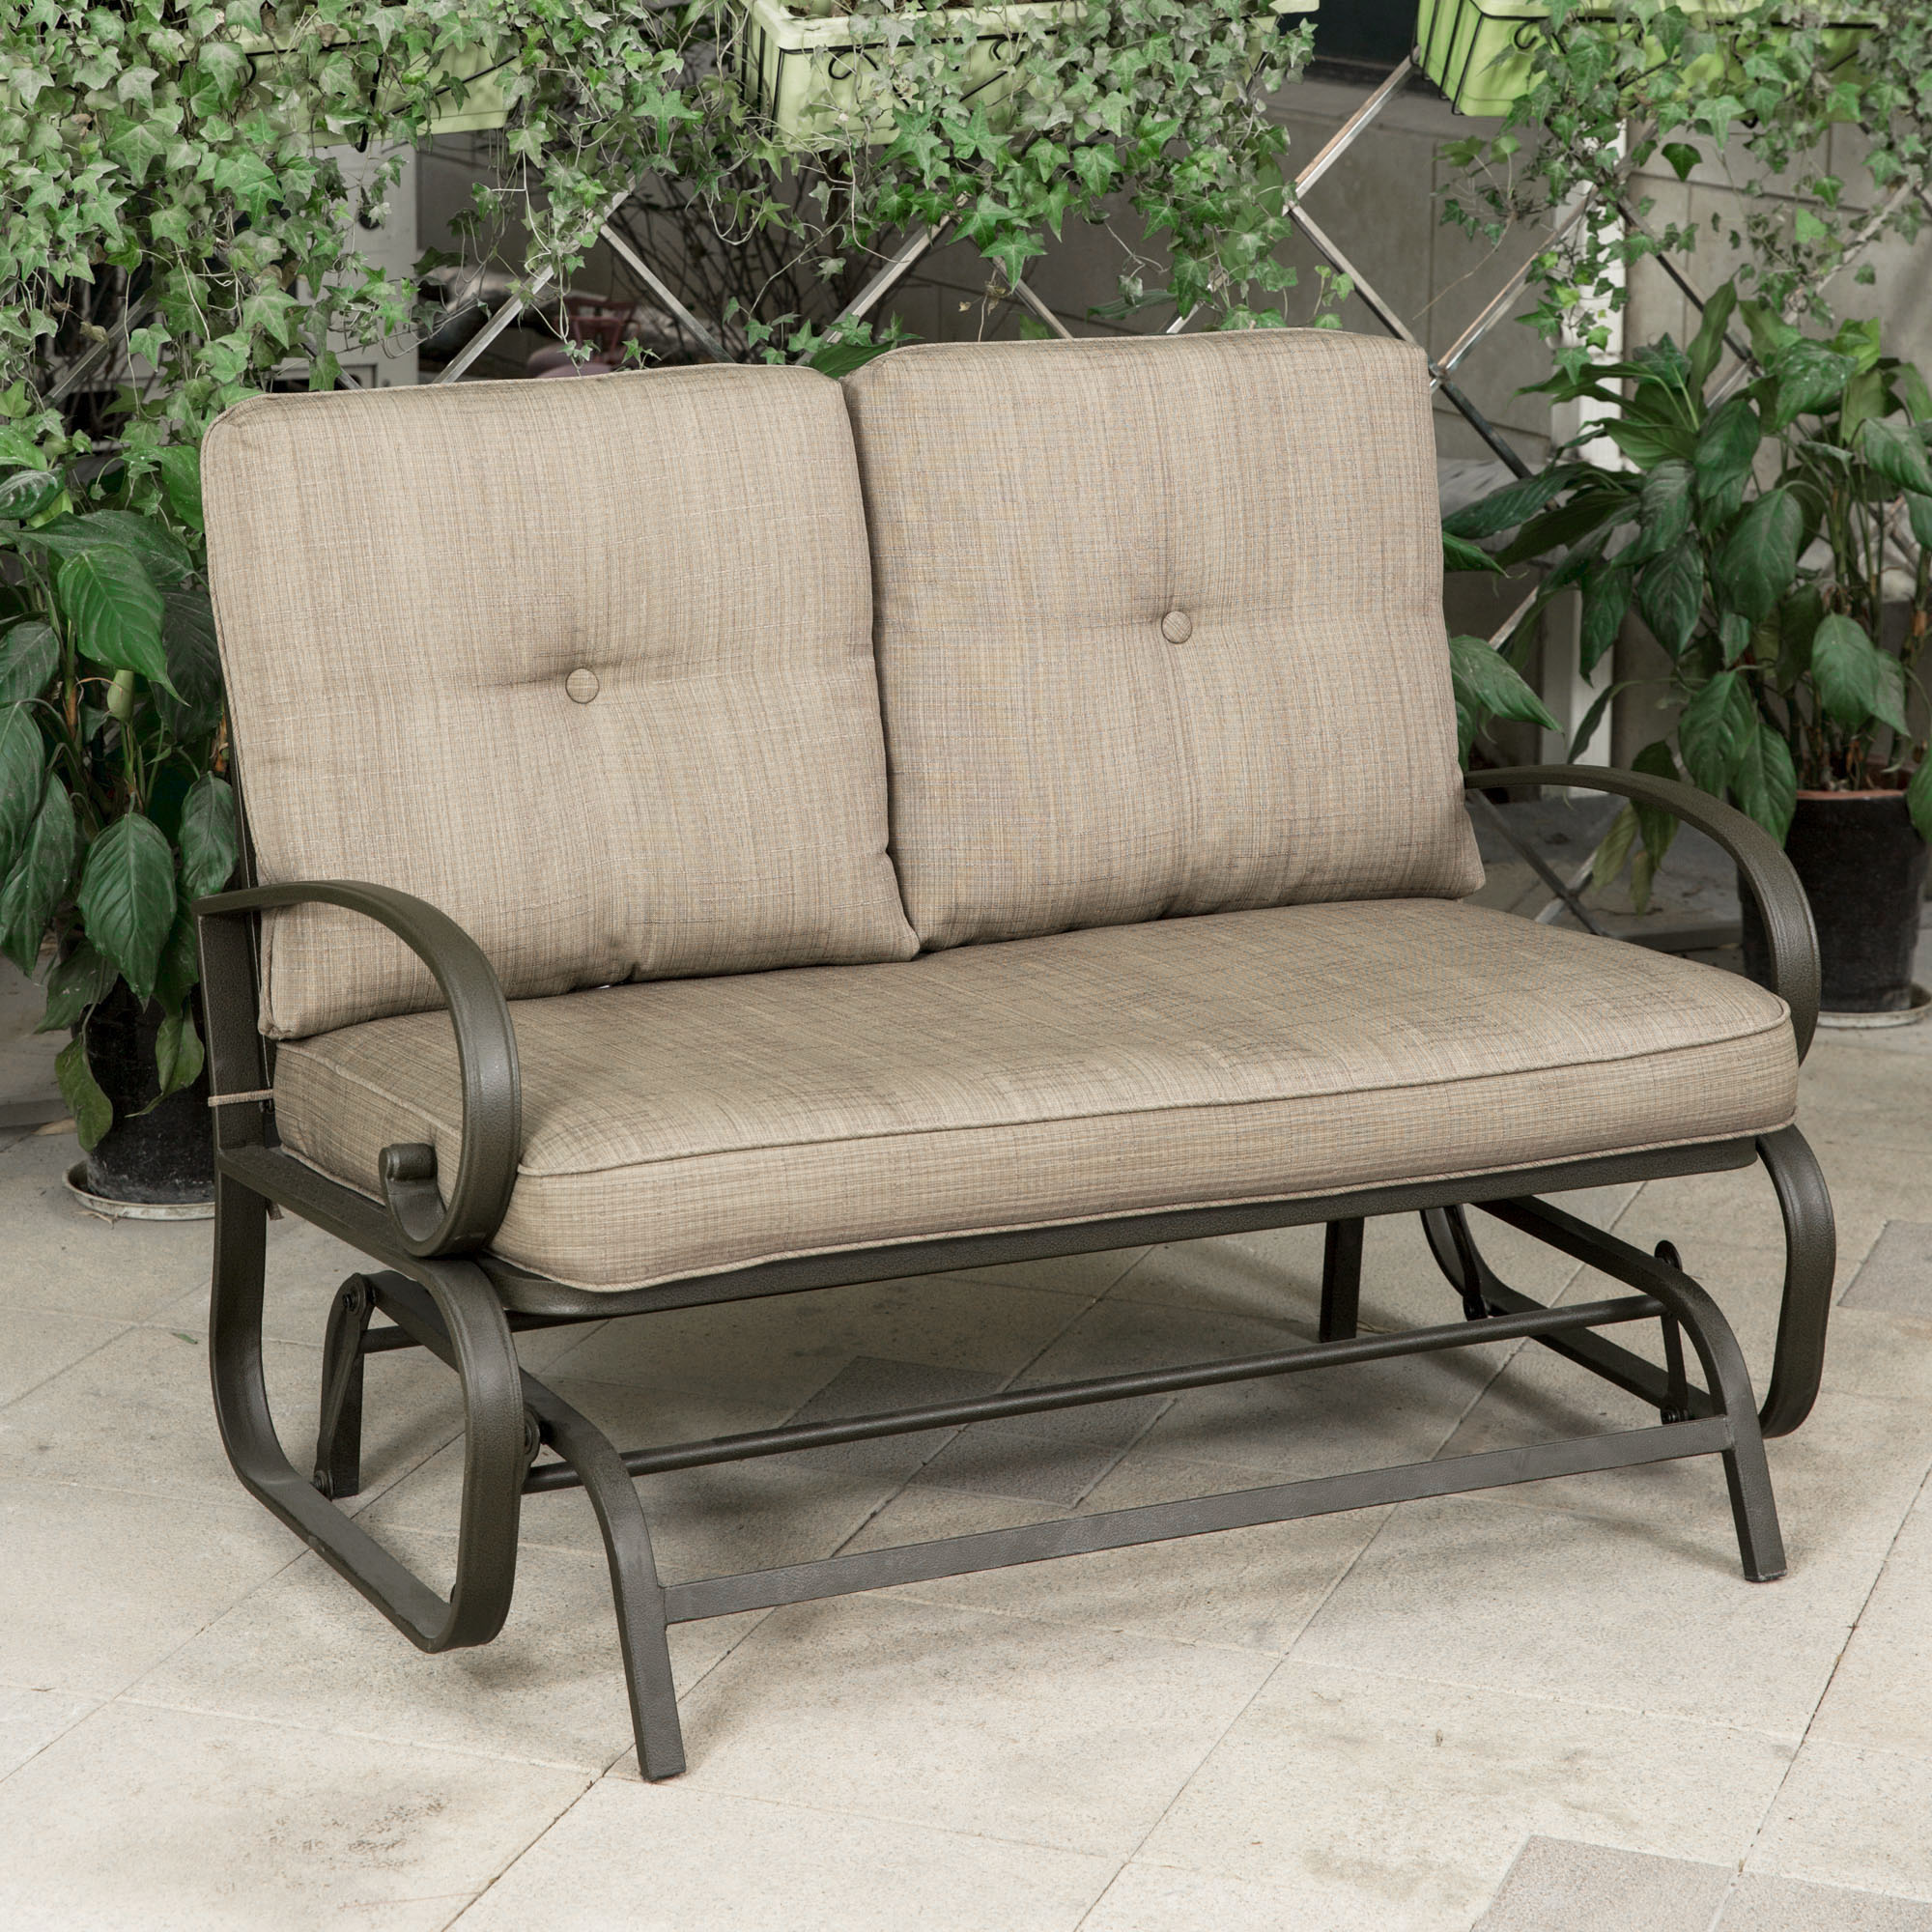 signature conversation ashley court outdoor design blue by sw gray loveseat abbots and chair set